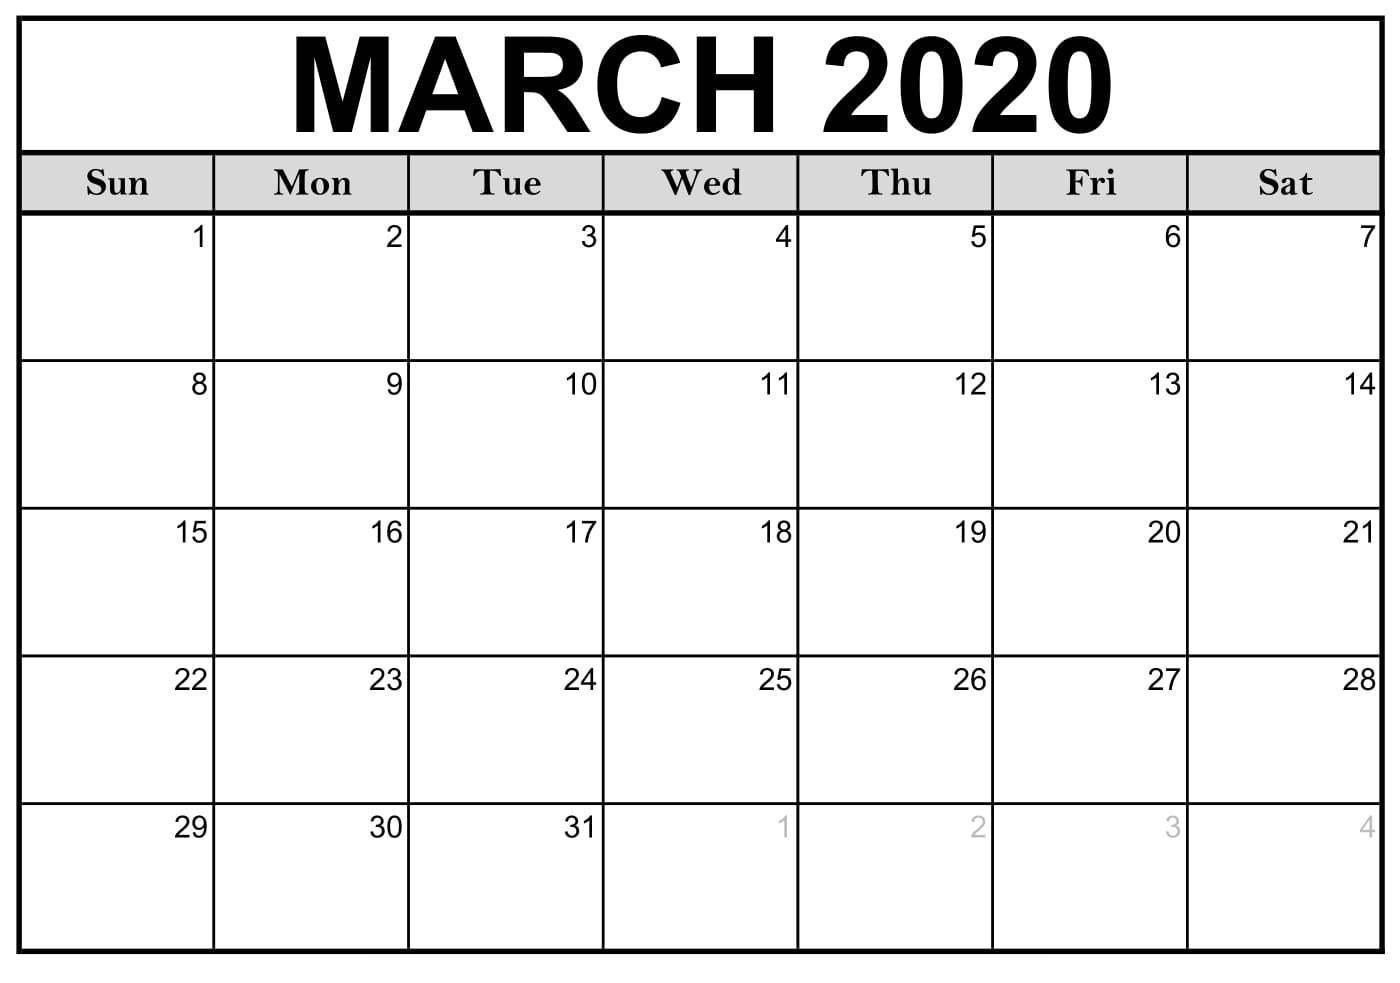 Calendar March 2020 Free Printable In 2020 | Calendar